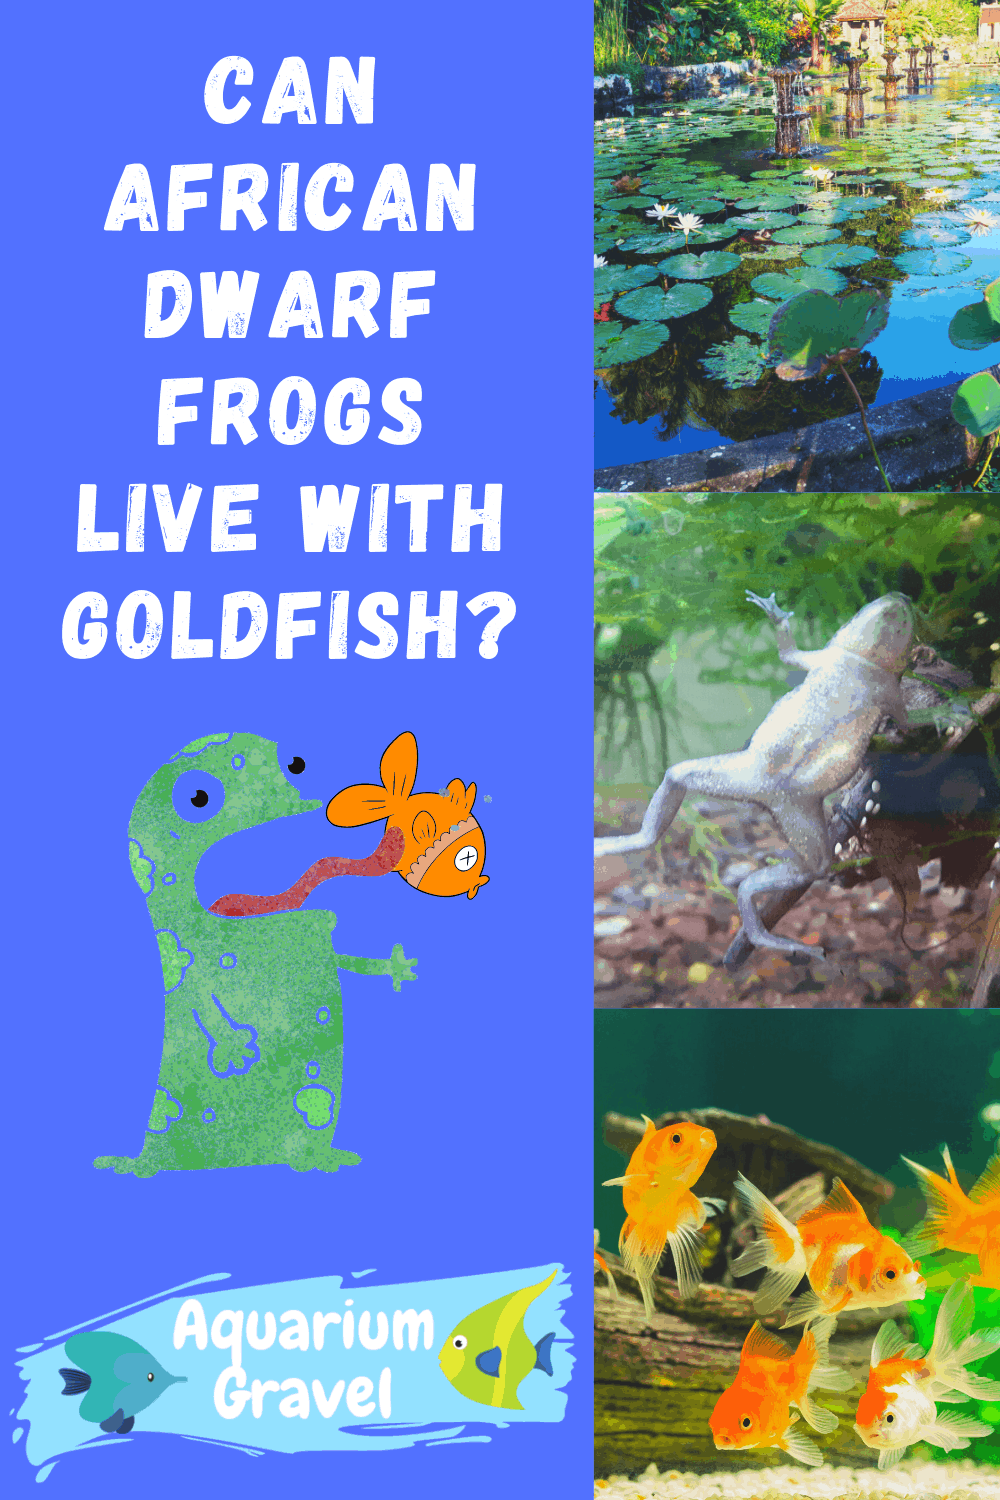 Can African Dwarf Frogs Live With Goldfish